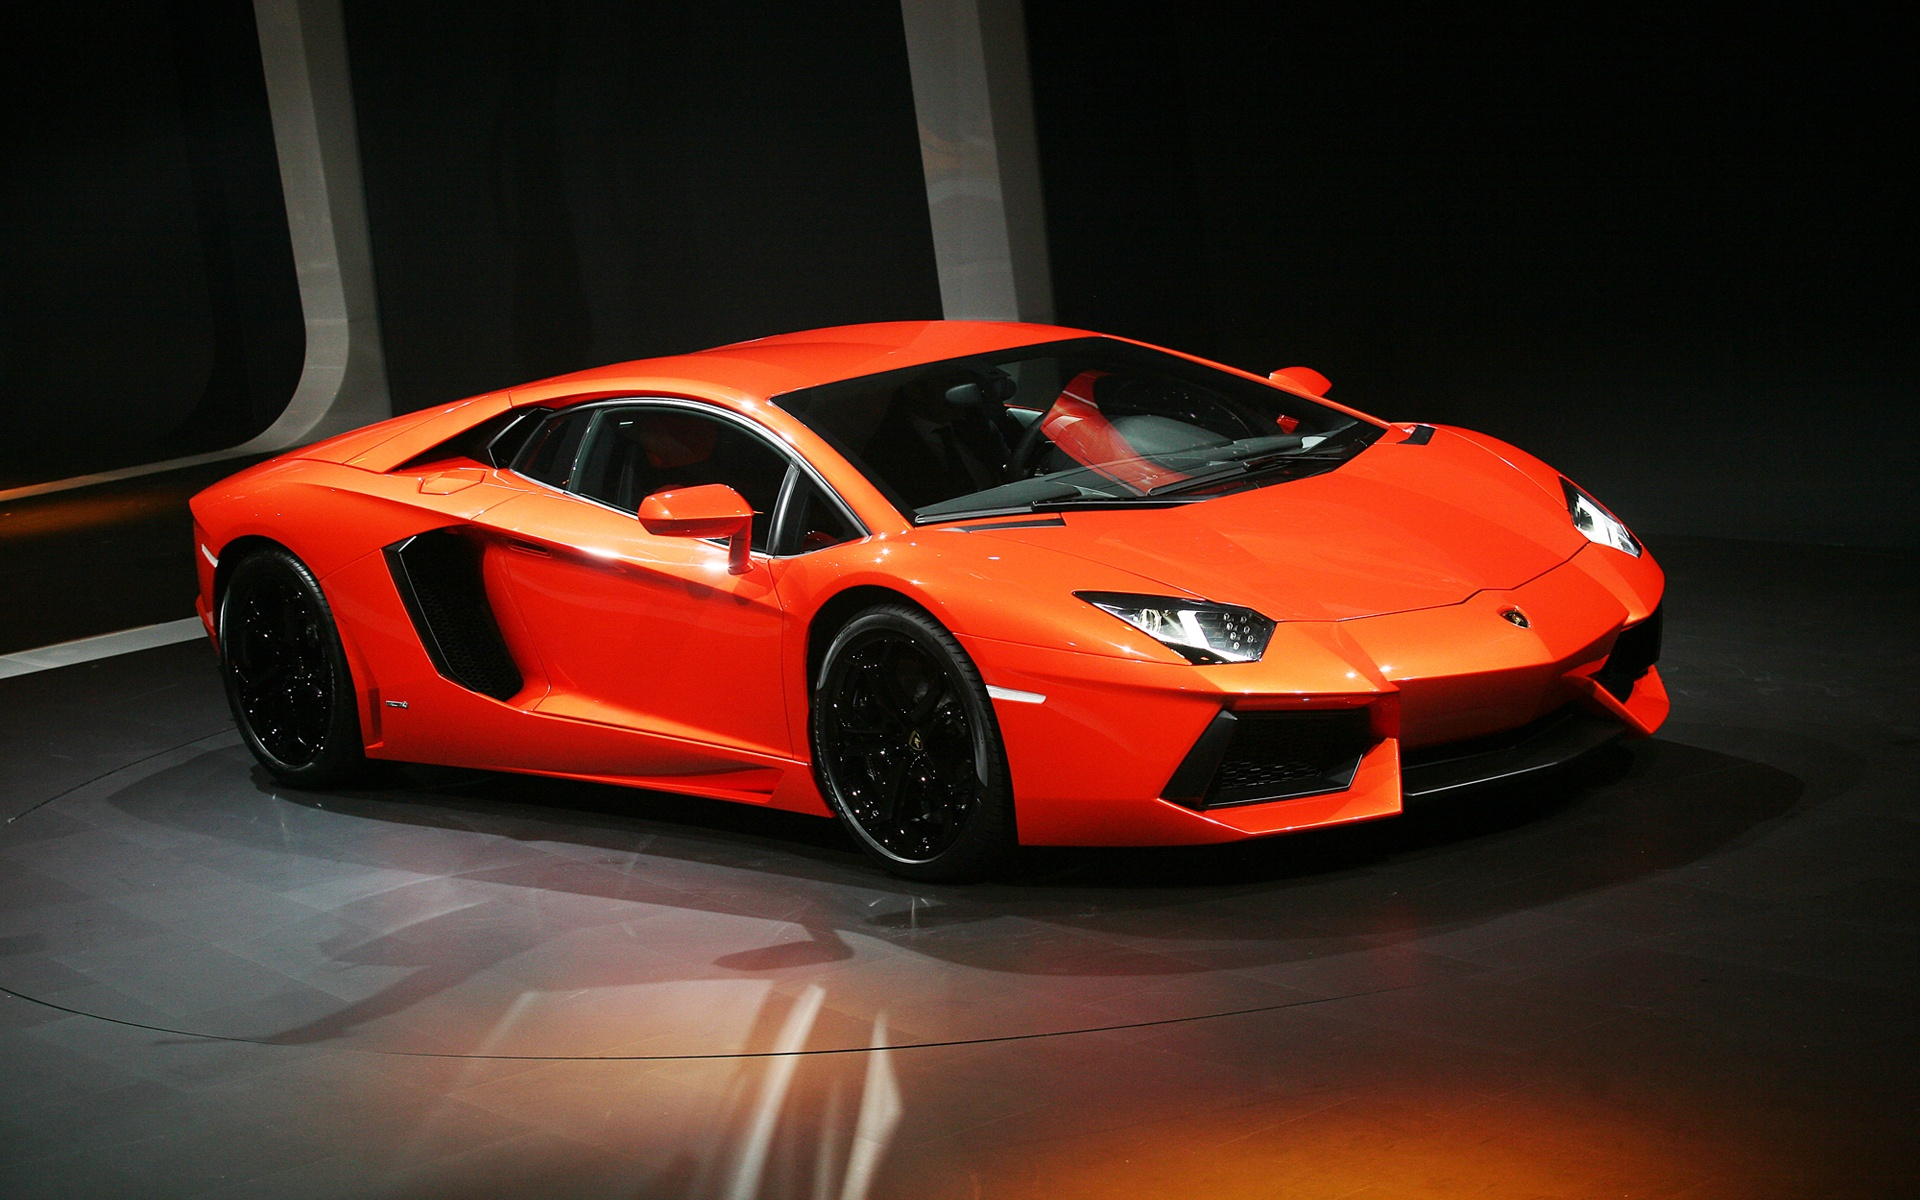 Lamborghini Aventador Super Sport Car Hd S 1080p Wallpaper